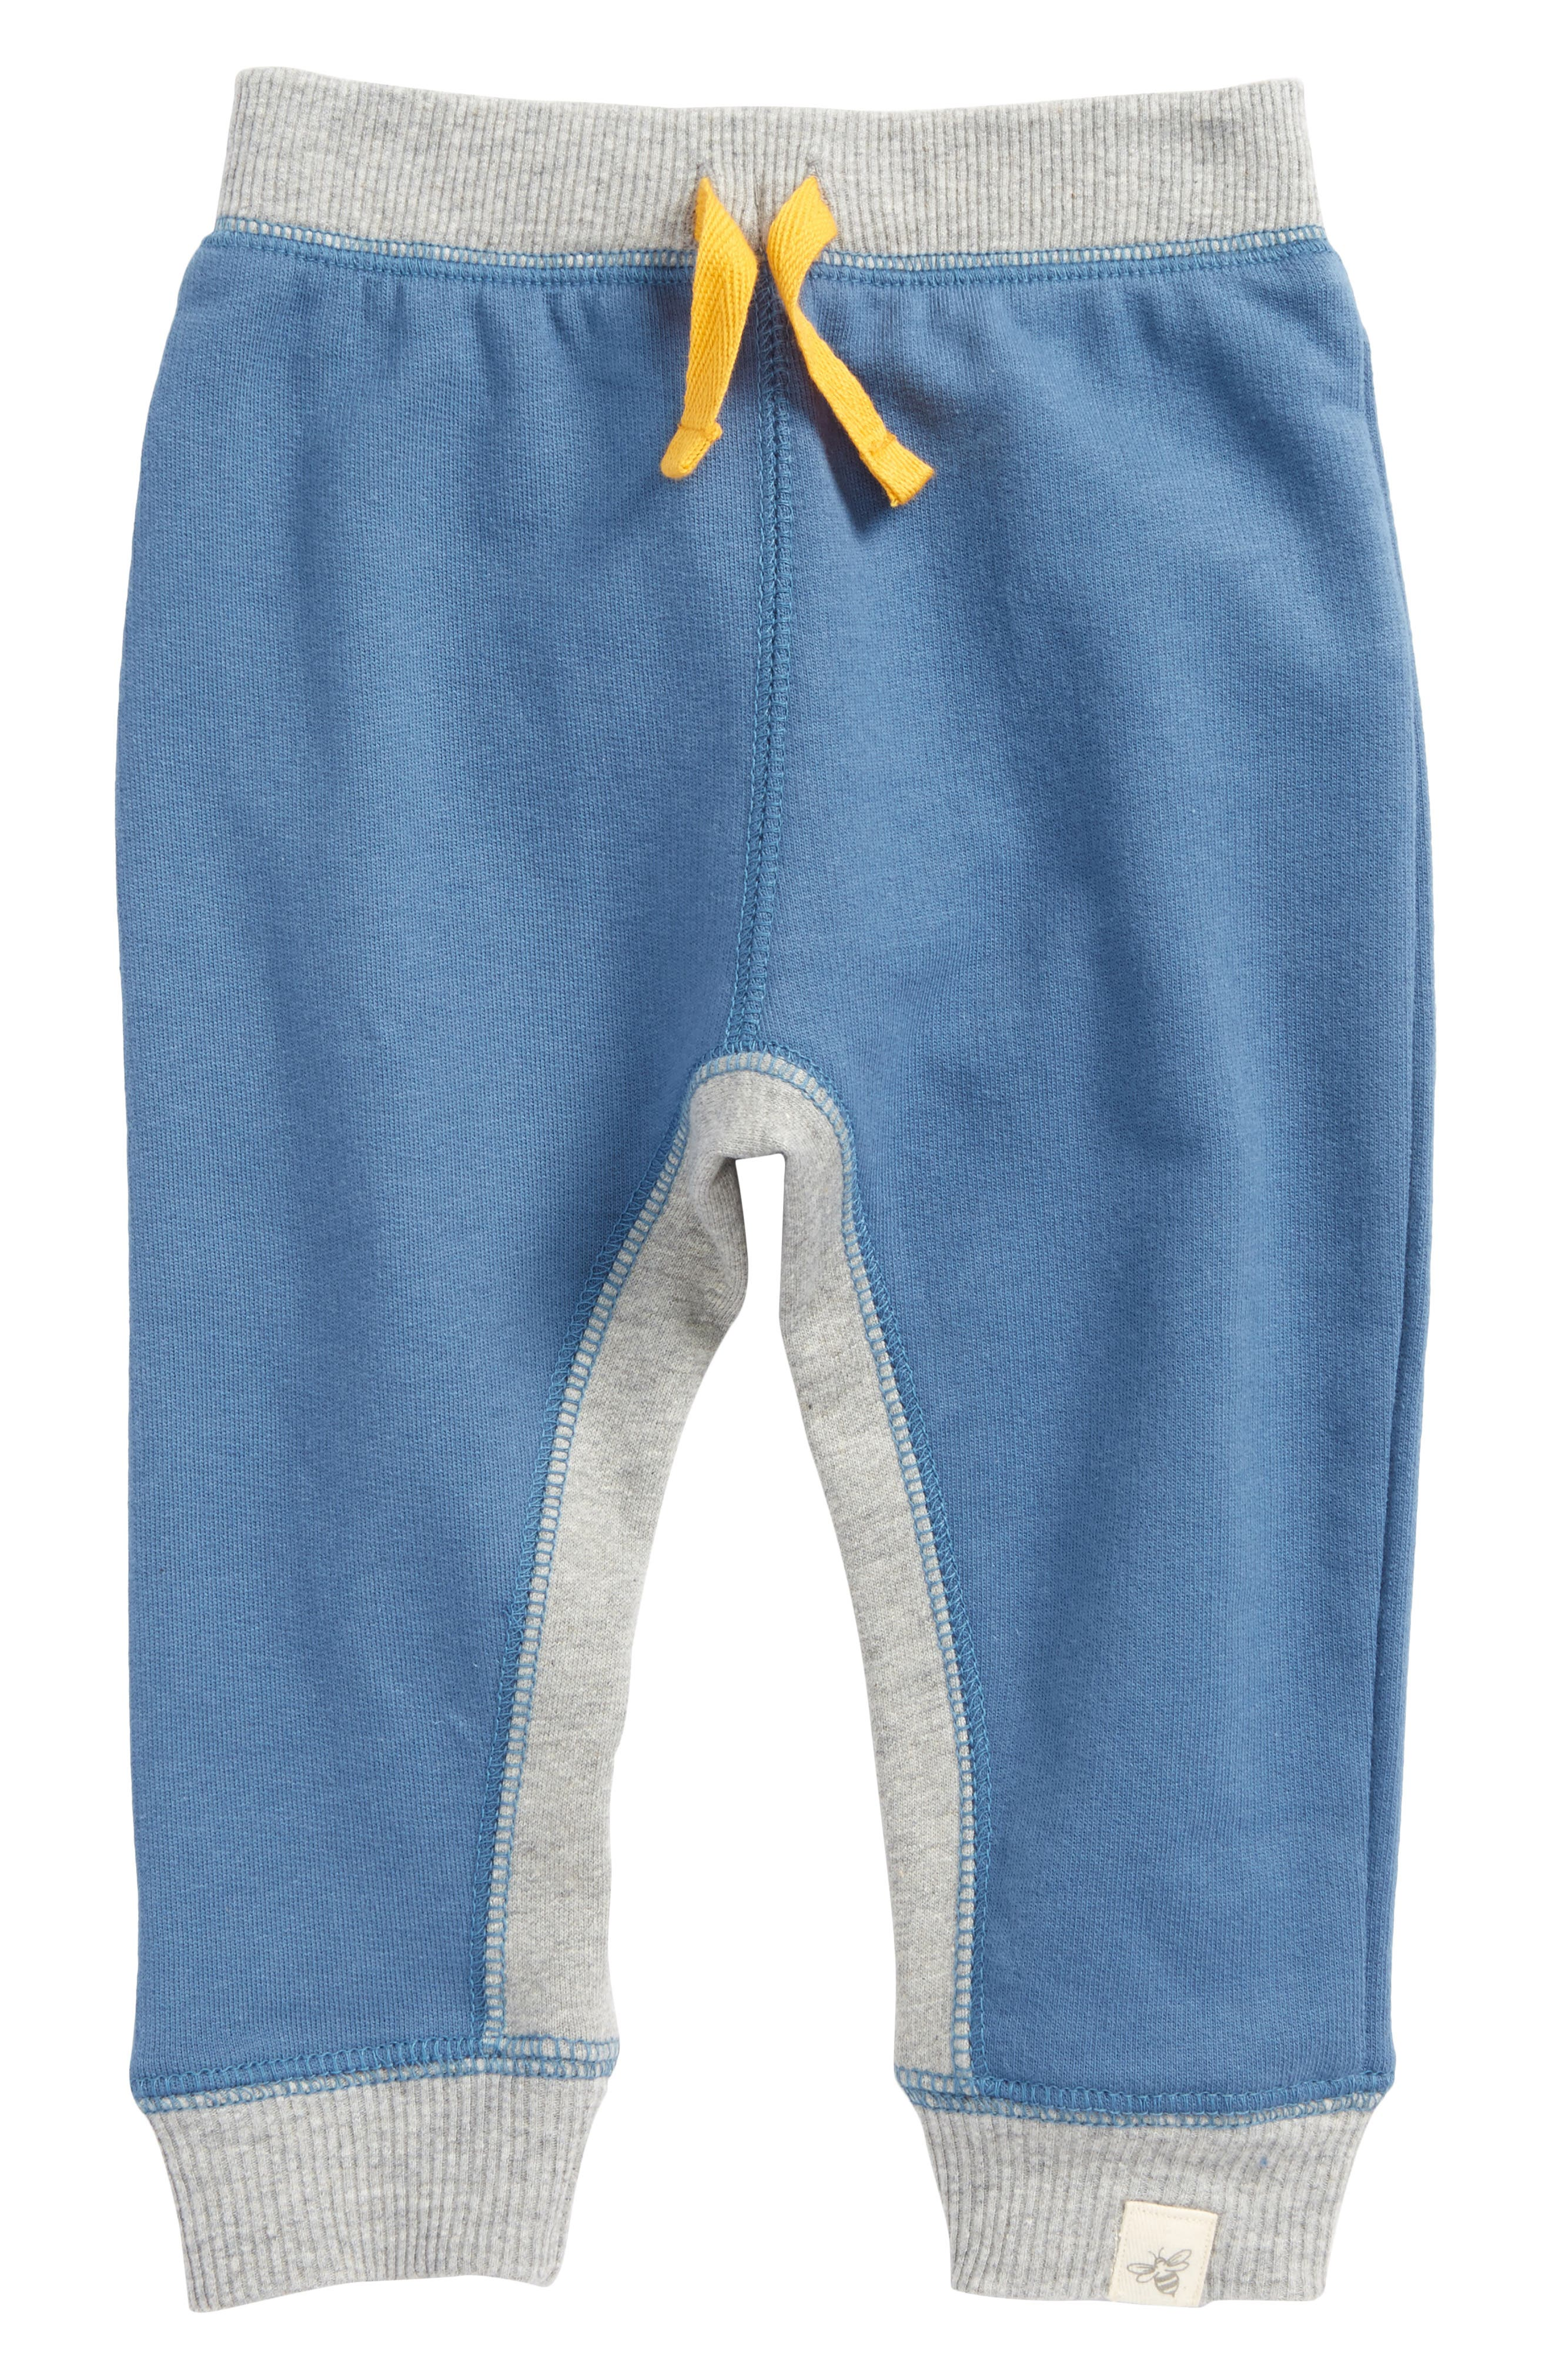 Alternate Image 1 Selected - Burt's Bees Baby Organic Cotton French Terry Pants (Baby Boys)